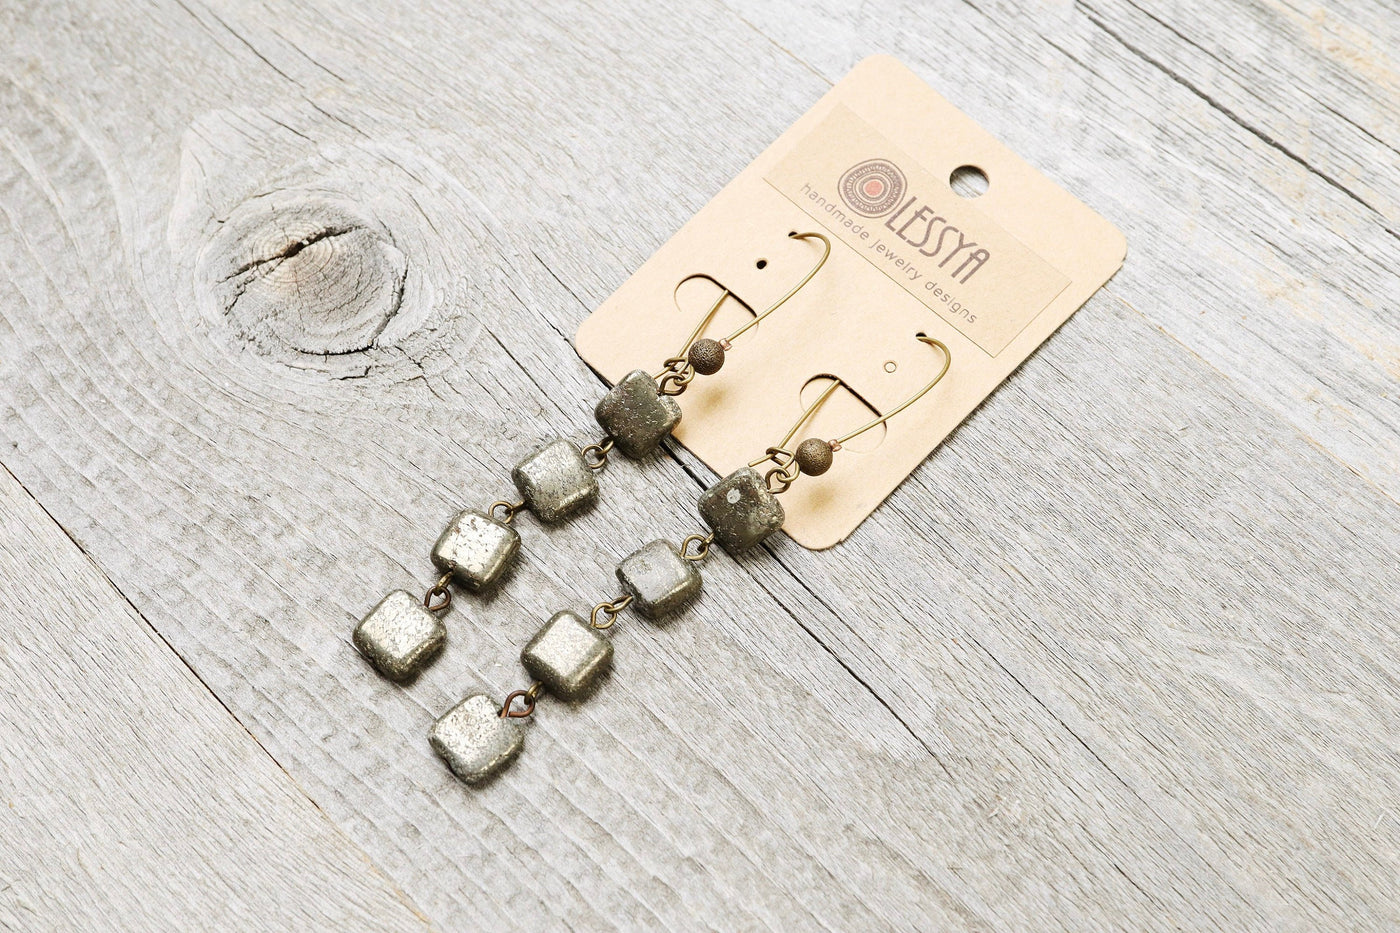 Square Pyrite Boho Earrings, Long Stone Cute Lovely Playful Chic Elegant Gypsy Hippie Earthy Rustic Gemstone Jewelry Set Mother Gift for Her